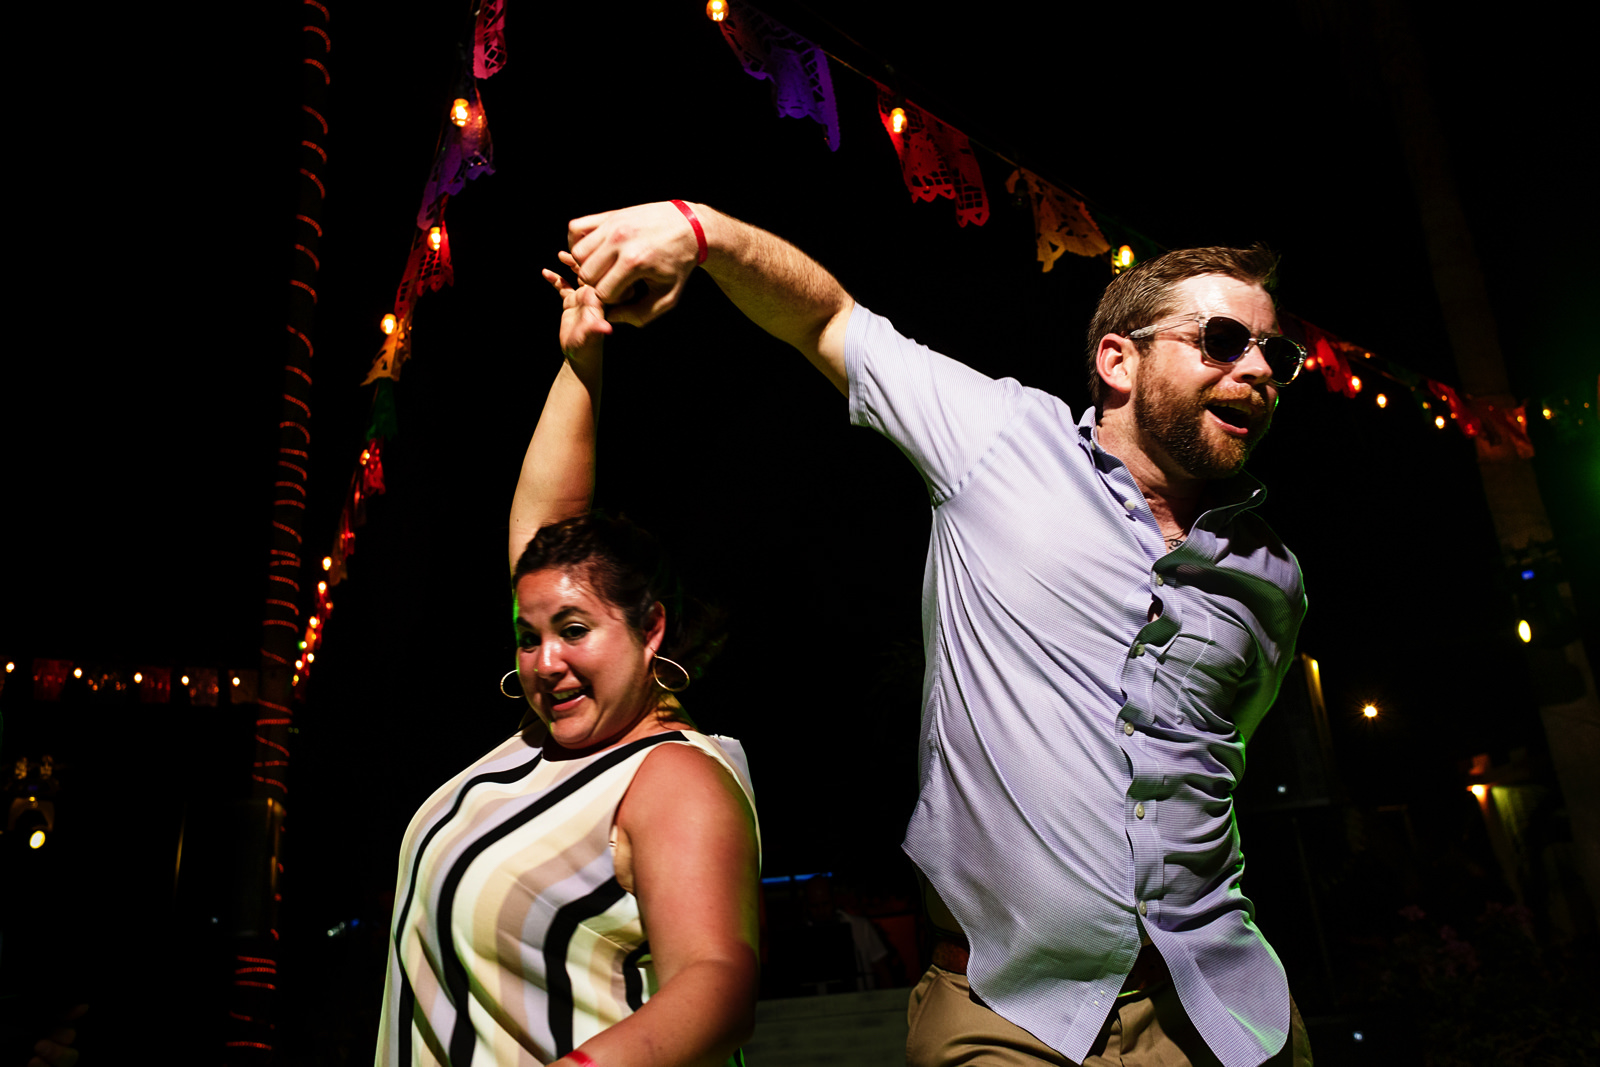 wedding guests dancing at the party with complex dance moves and spins